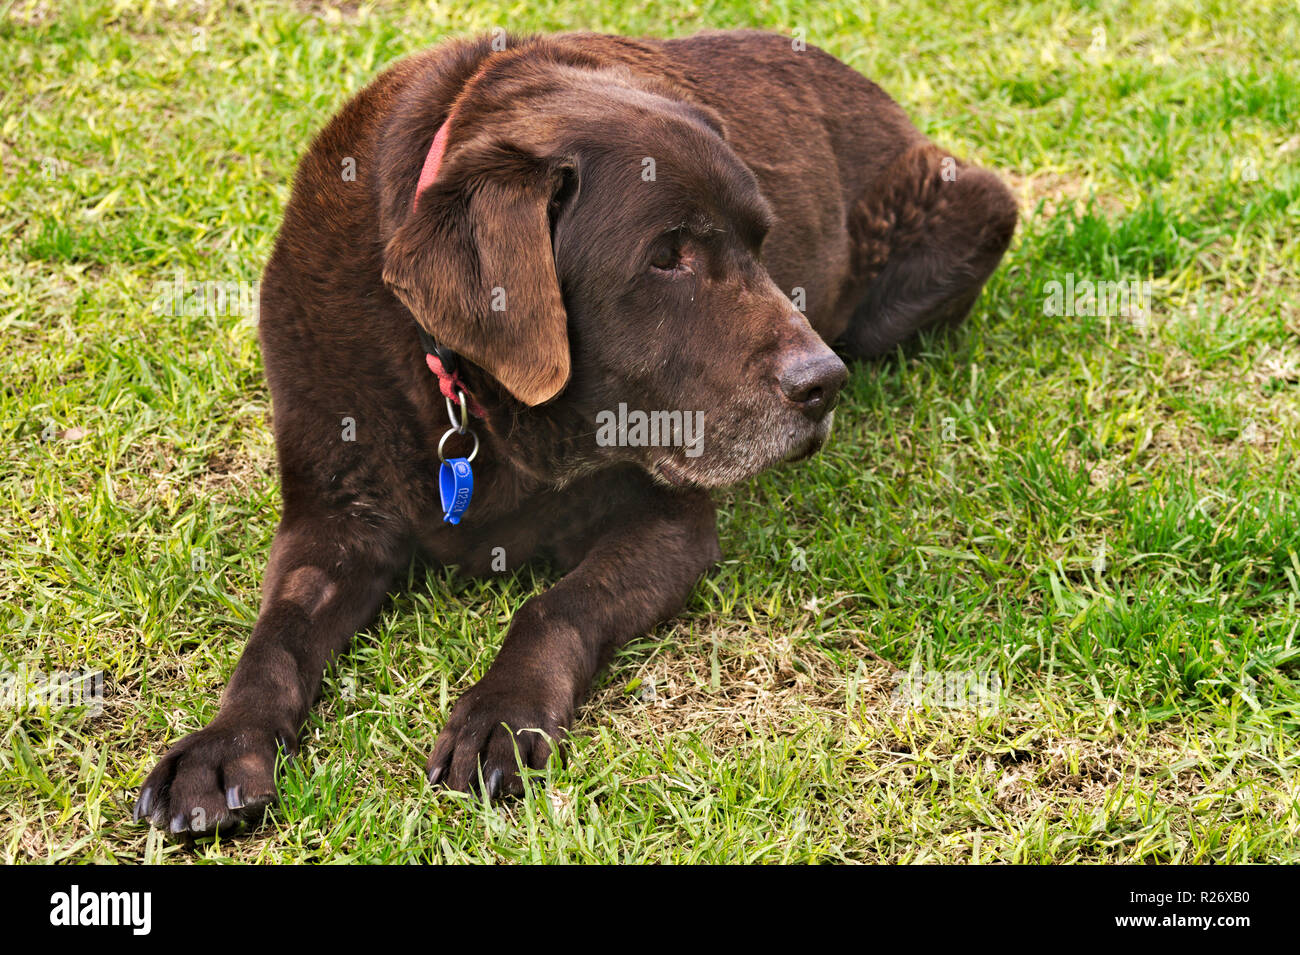 Old chocolate brown labrador retriever dog with collar and tags, lying on grass. Stock Photo